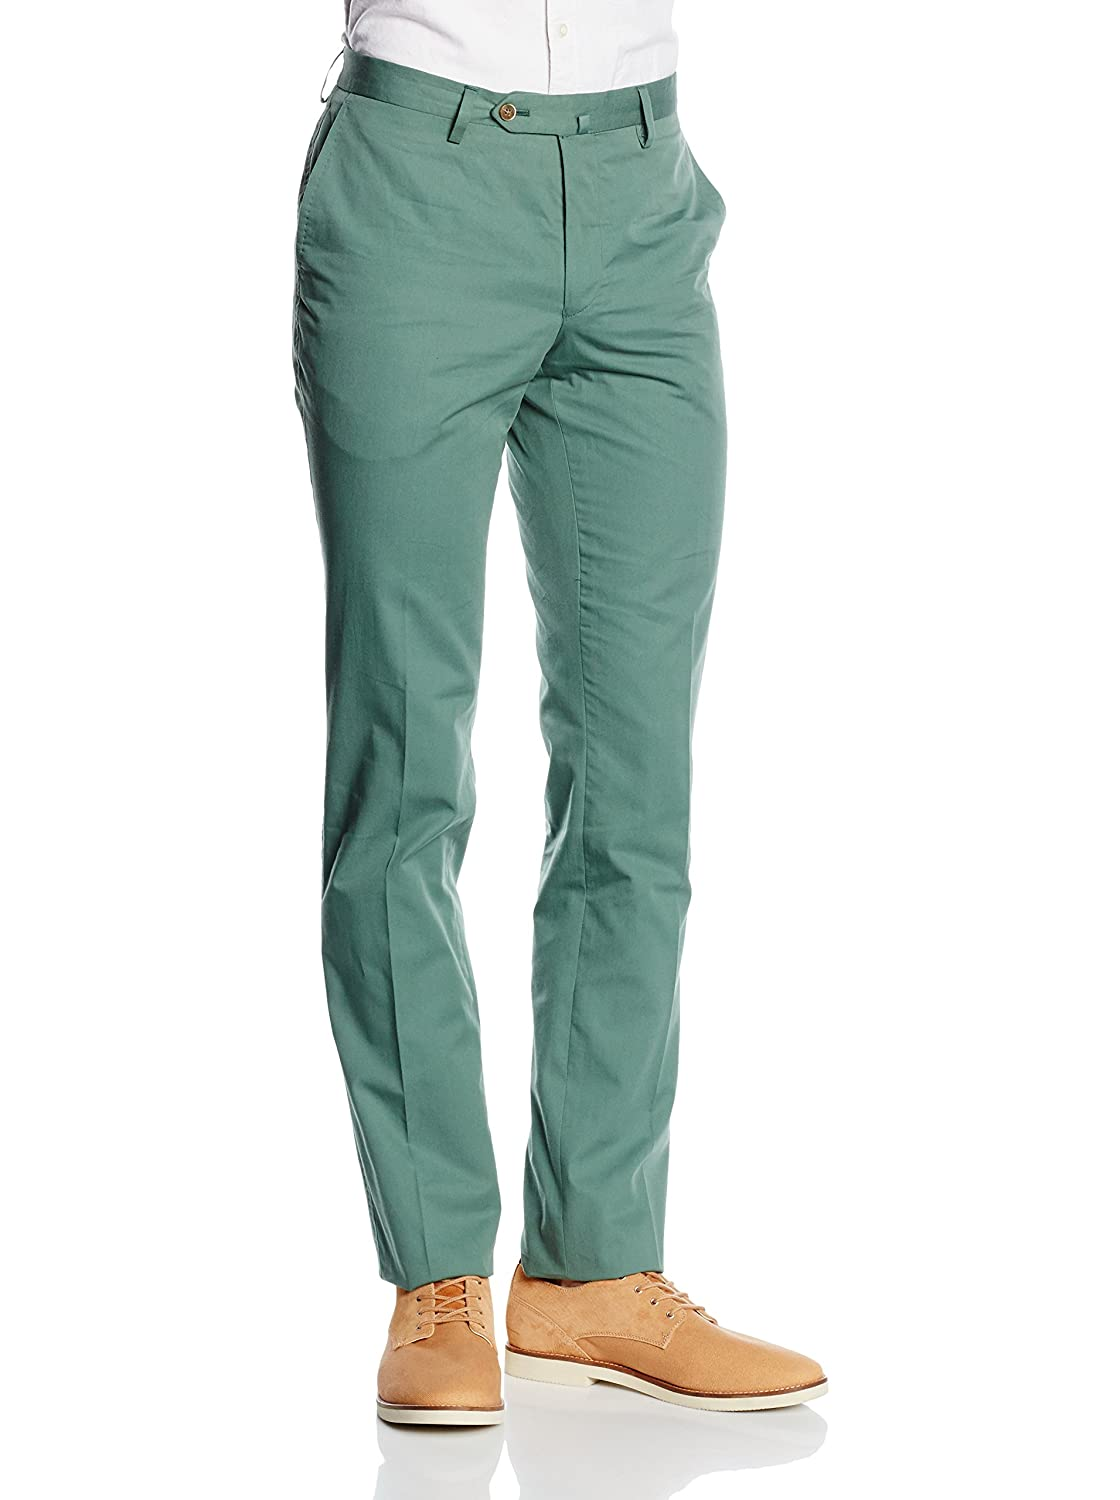 Hackett London Pantalón Verde ES 31